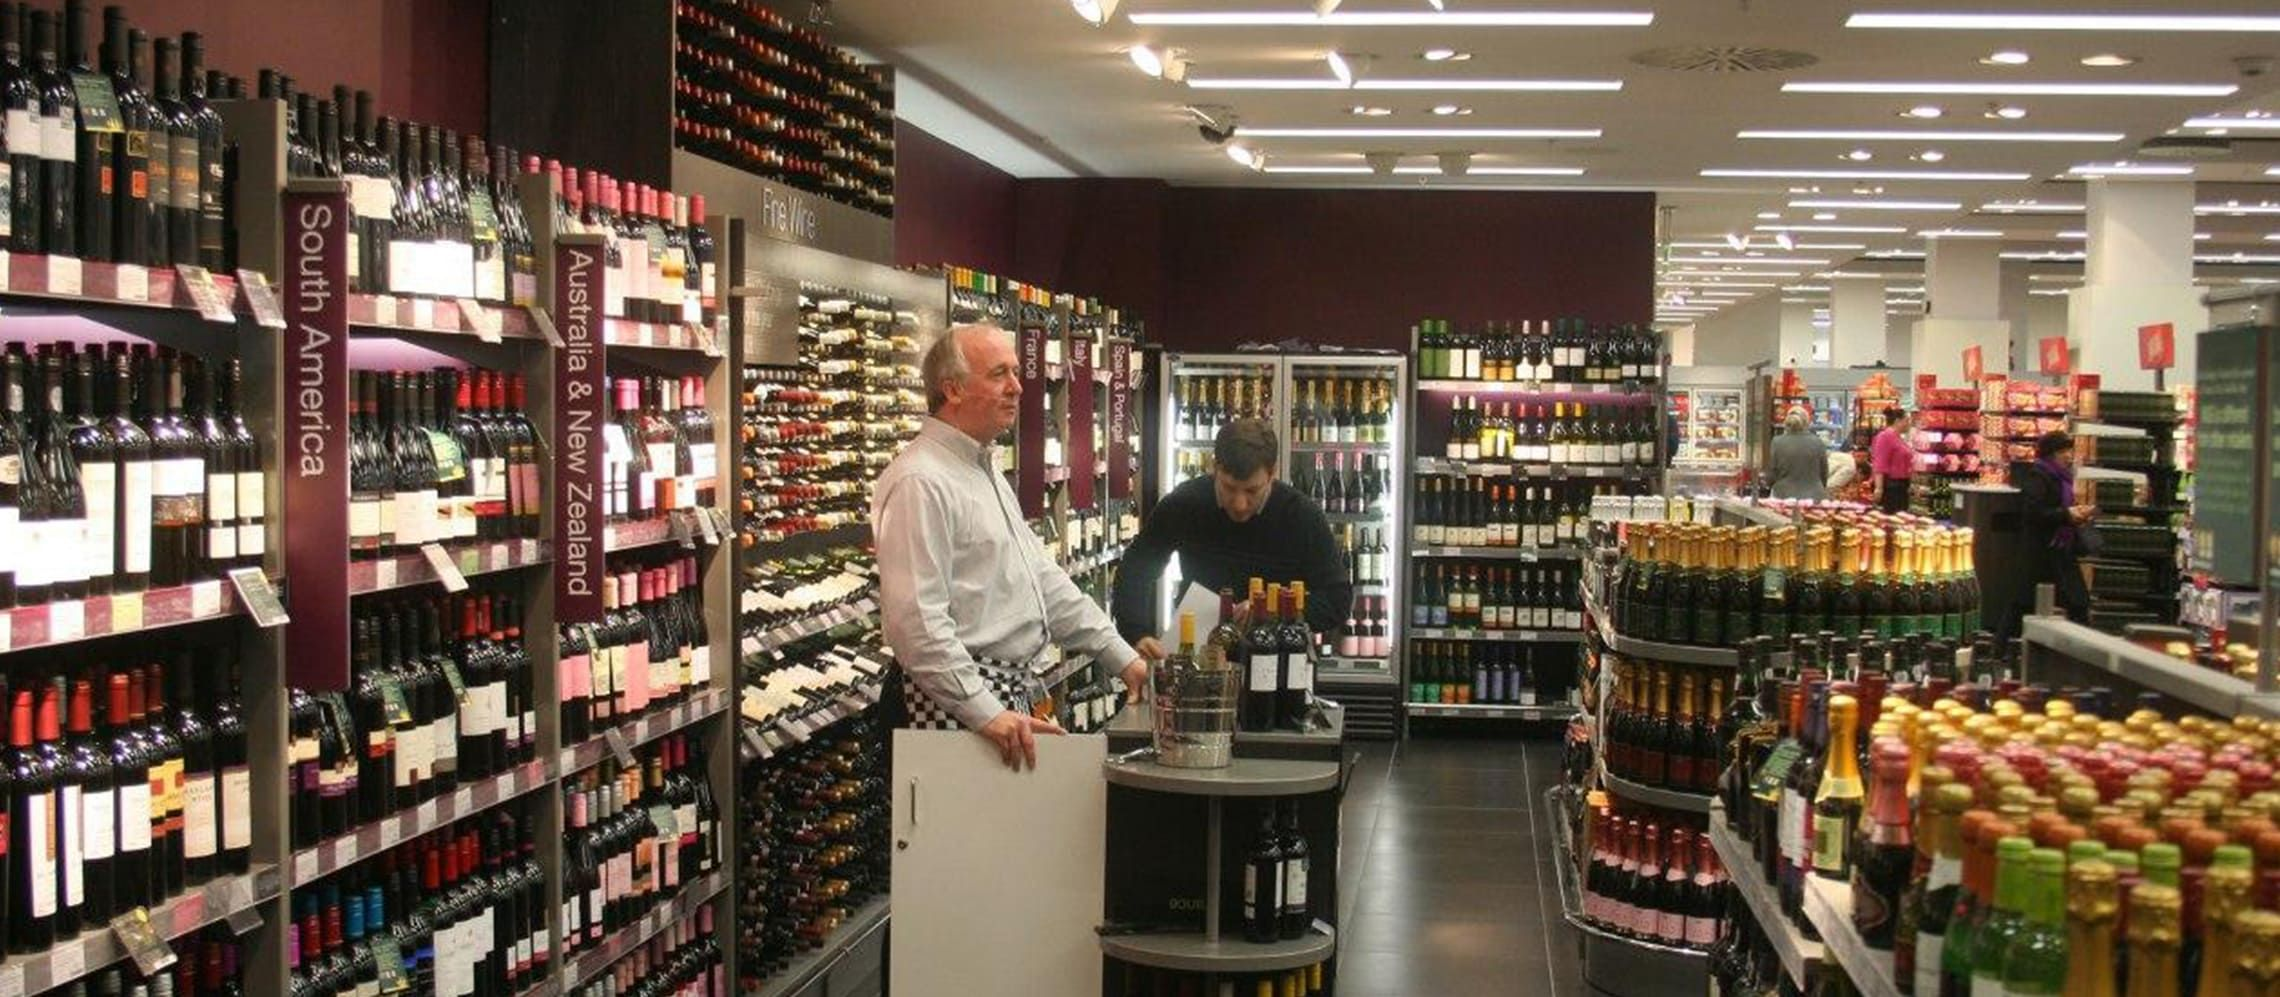 Photo for: 8 Wine Retailers in Edinburgh